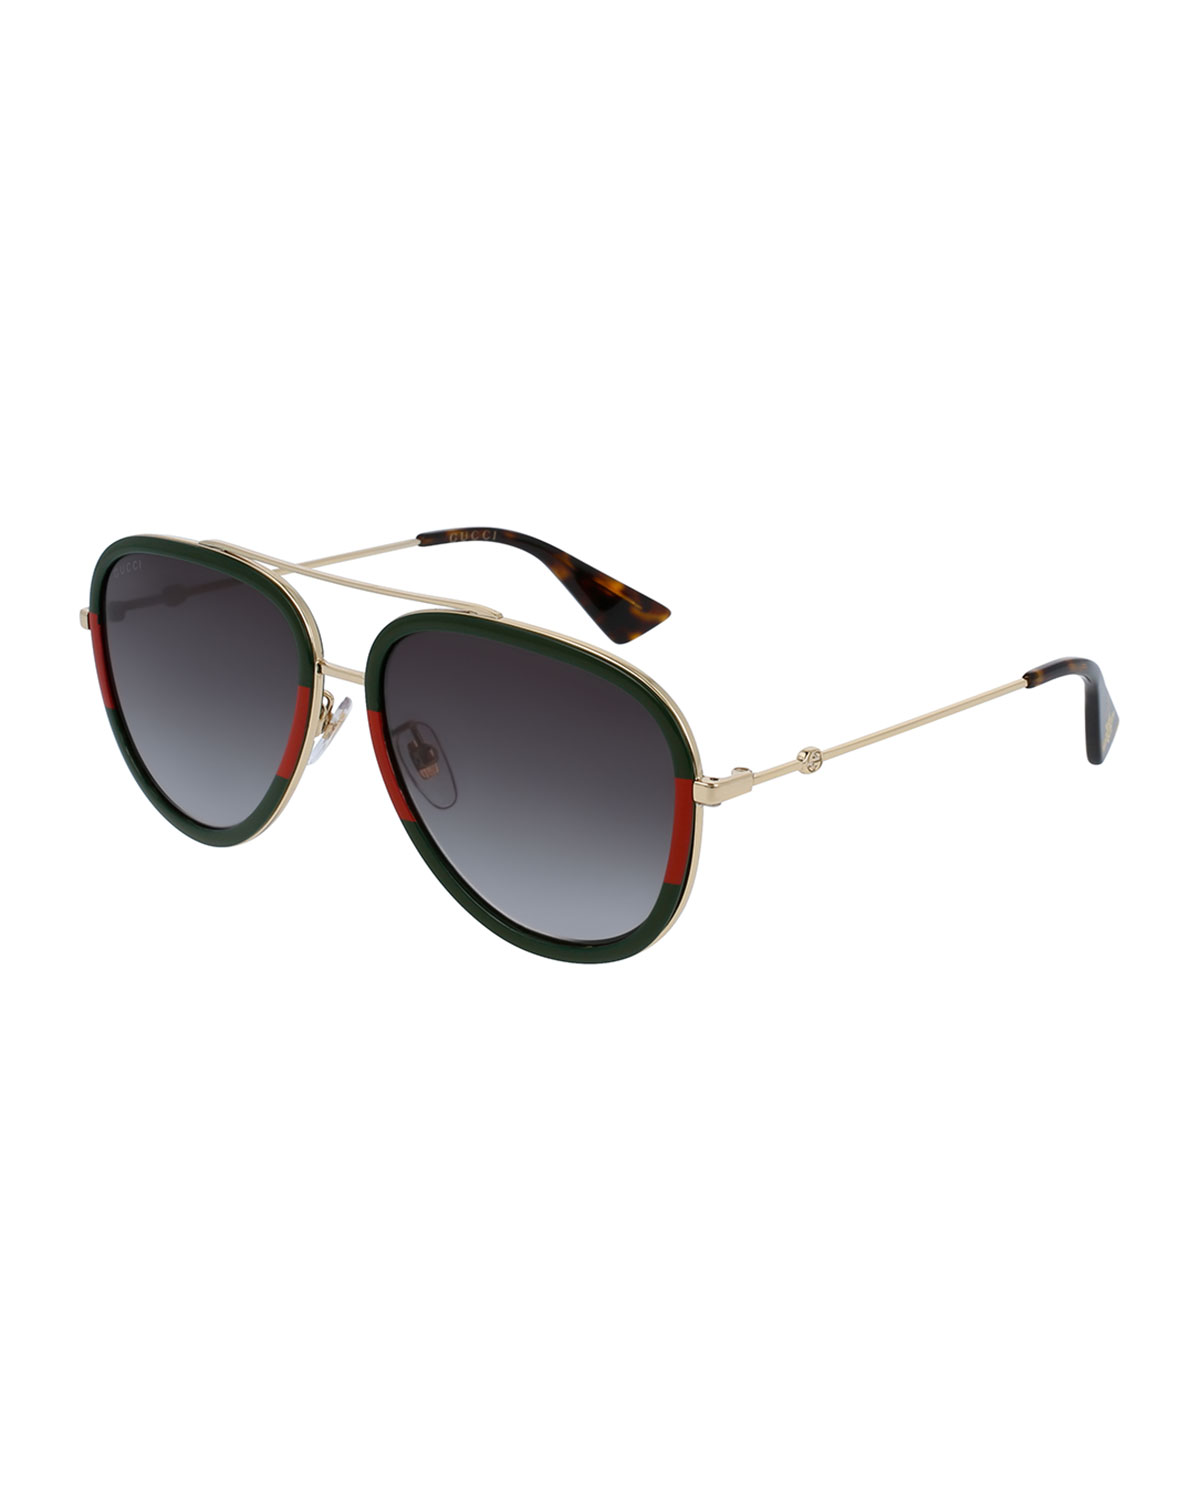 5c288827f42b4 Gucci Gradient Web Aviator Sunglasses